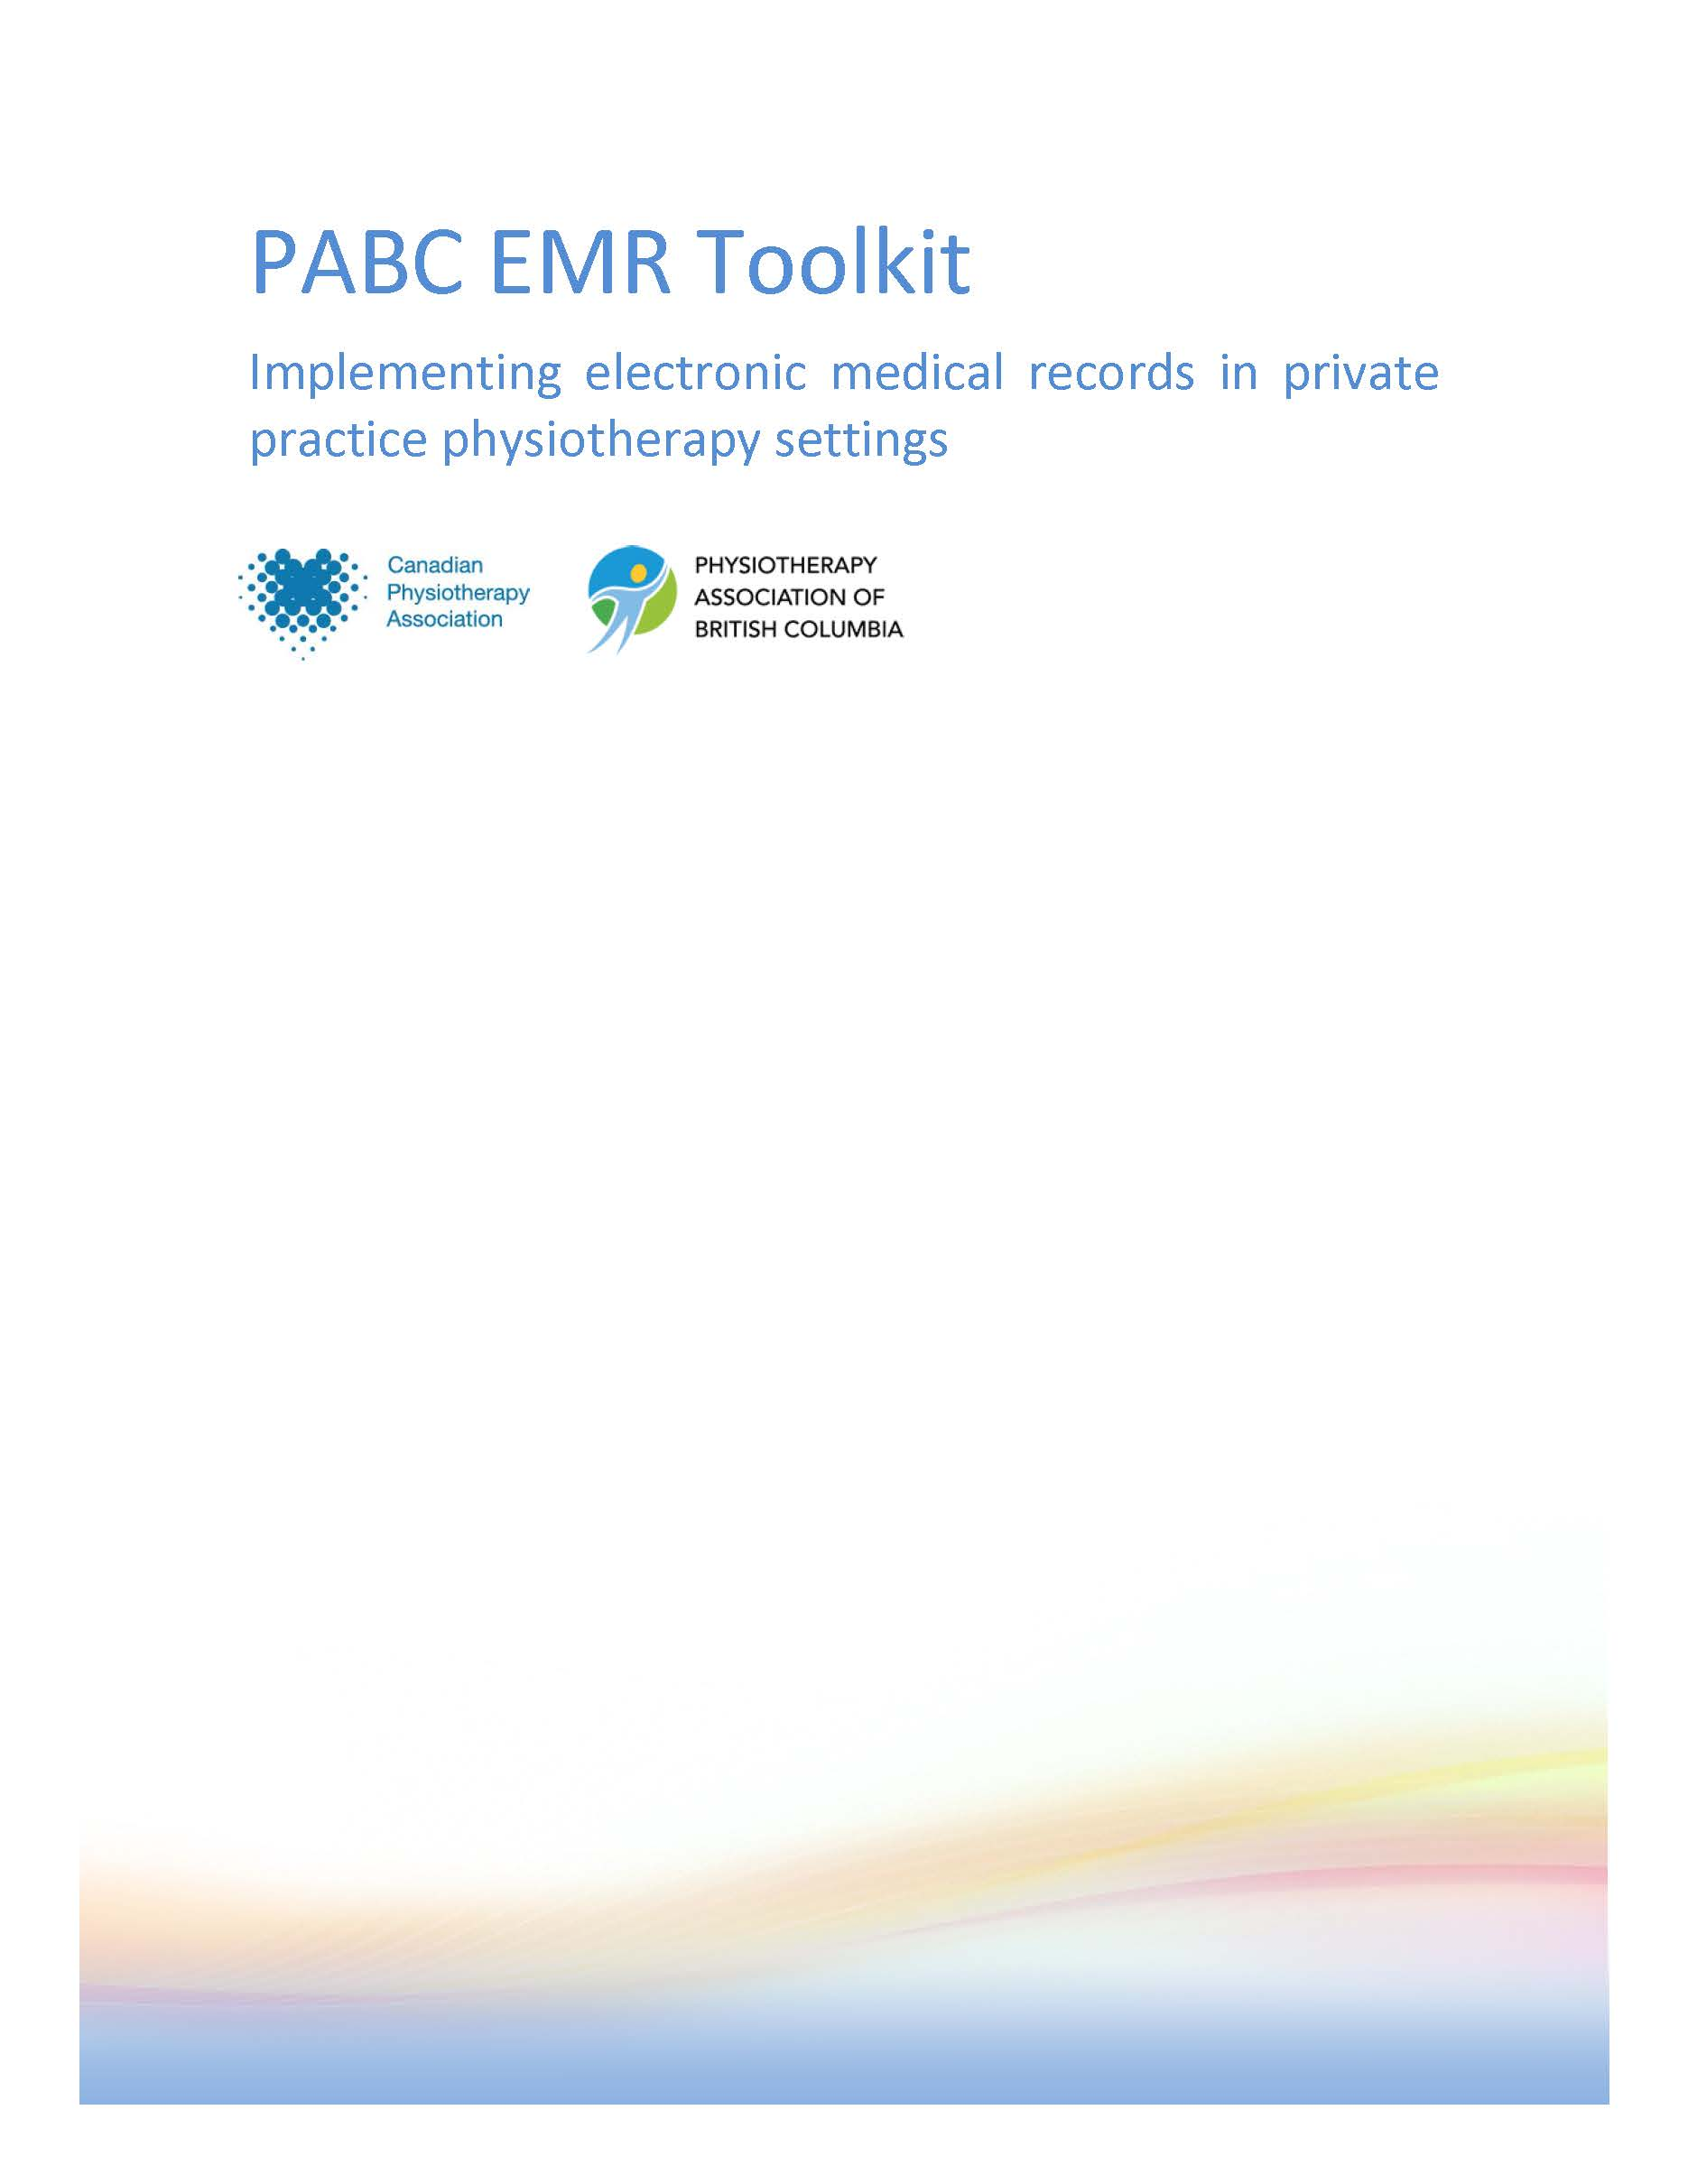 Pabc emr toolkit emr toolkitpabc cpa20161page01g fandeluxe Gallery